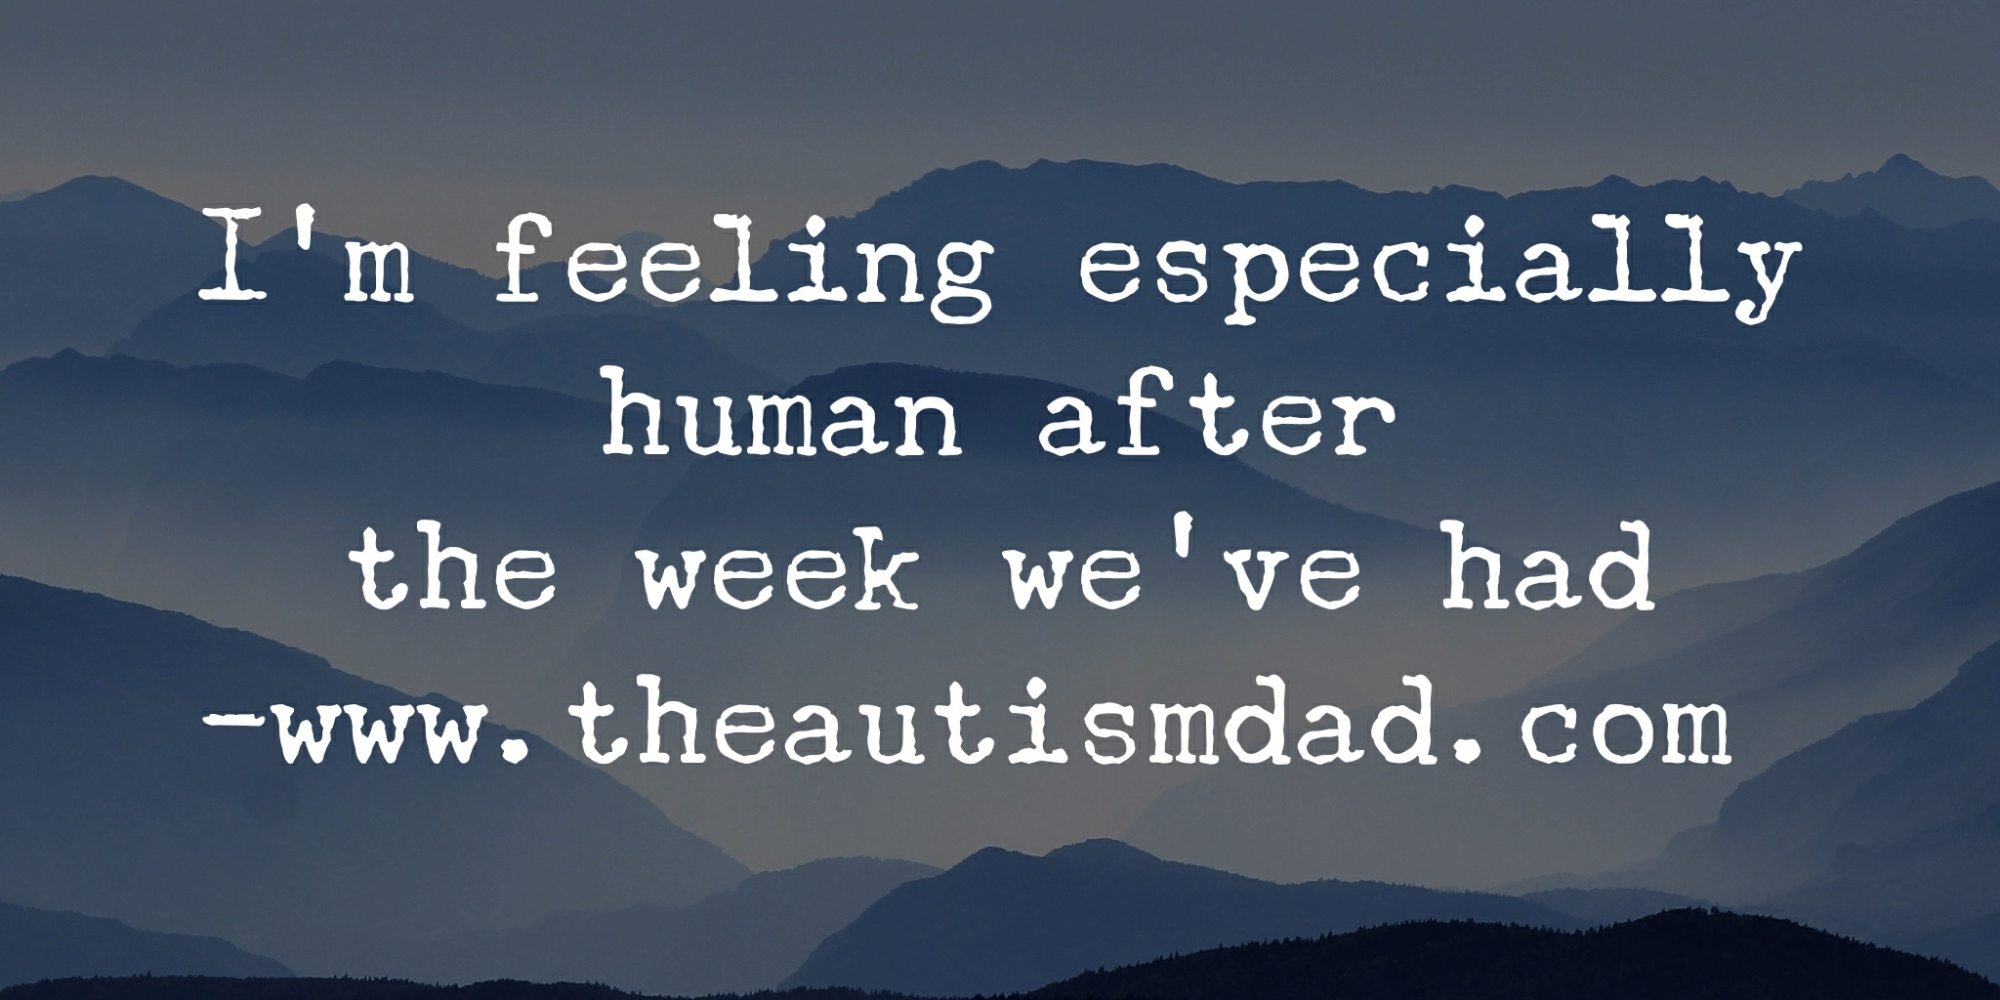 I'm feeling especially human after the week we've had